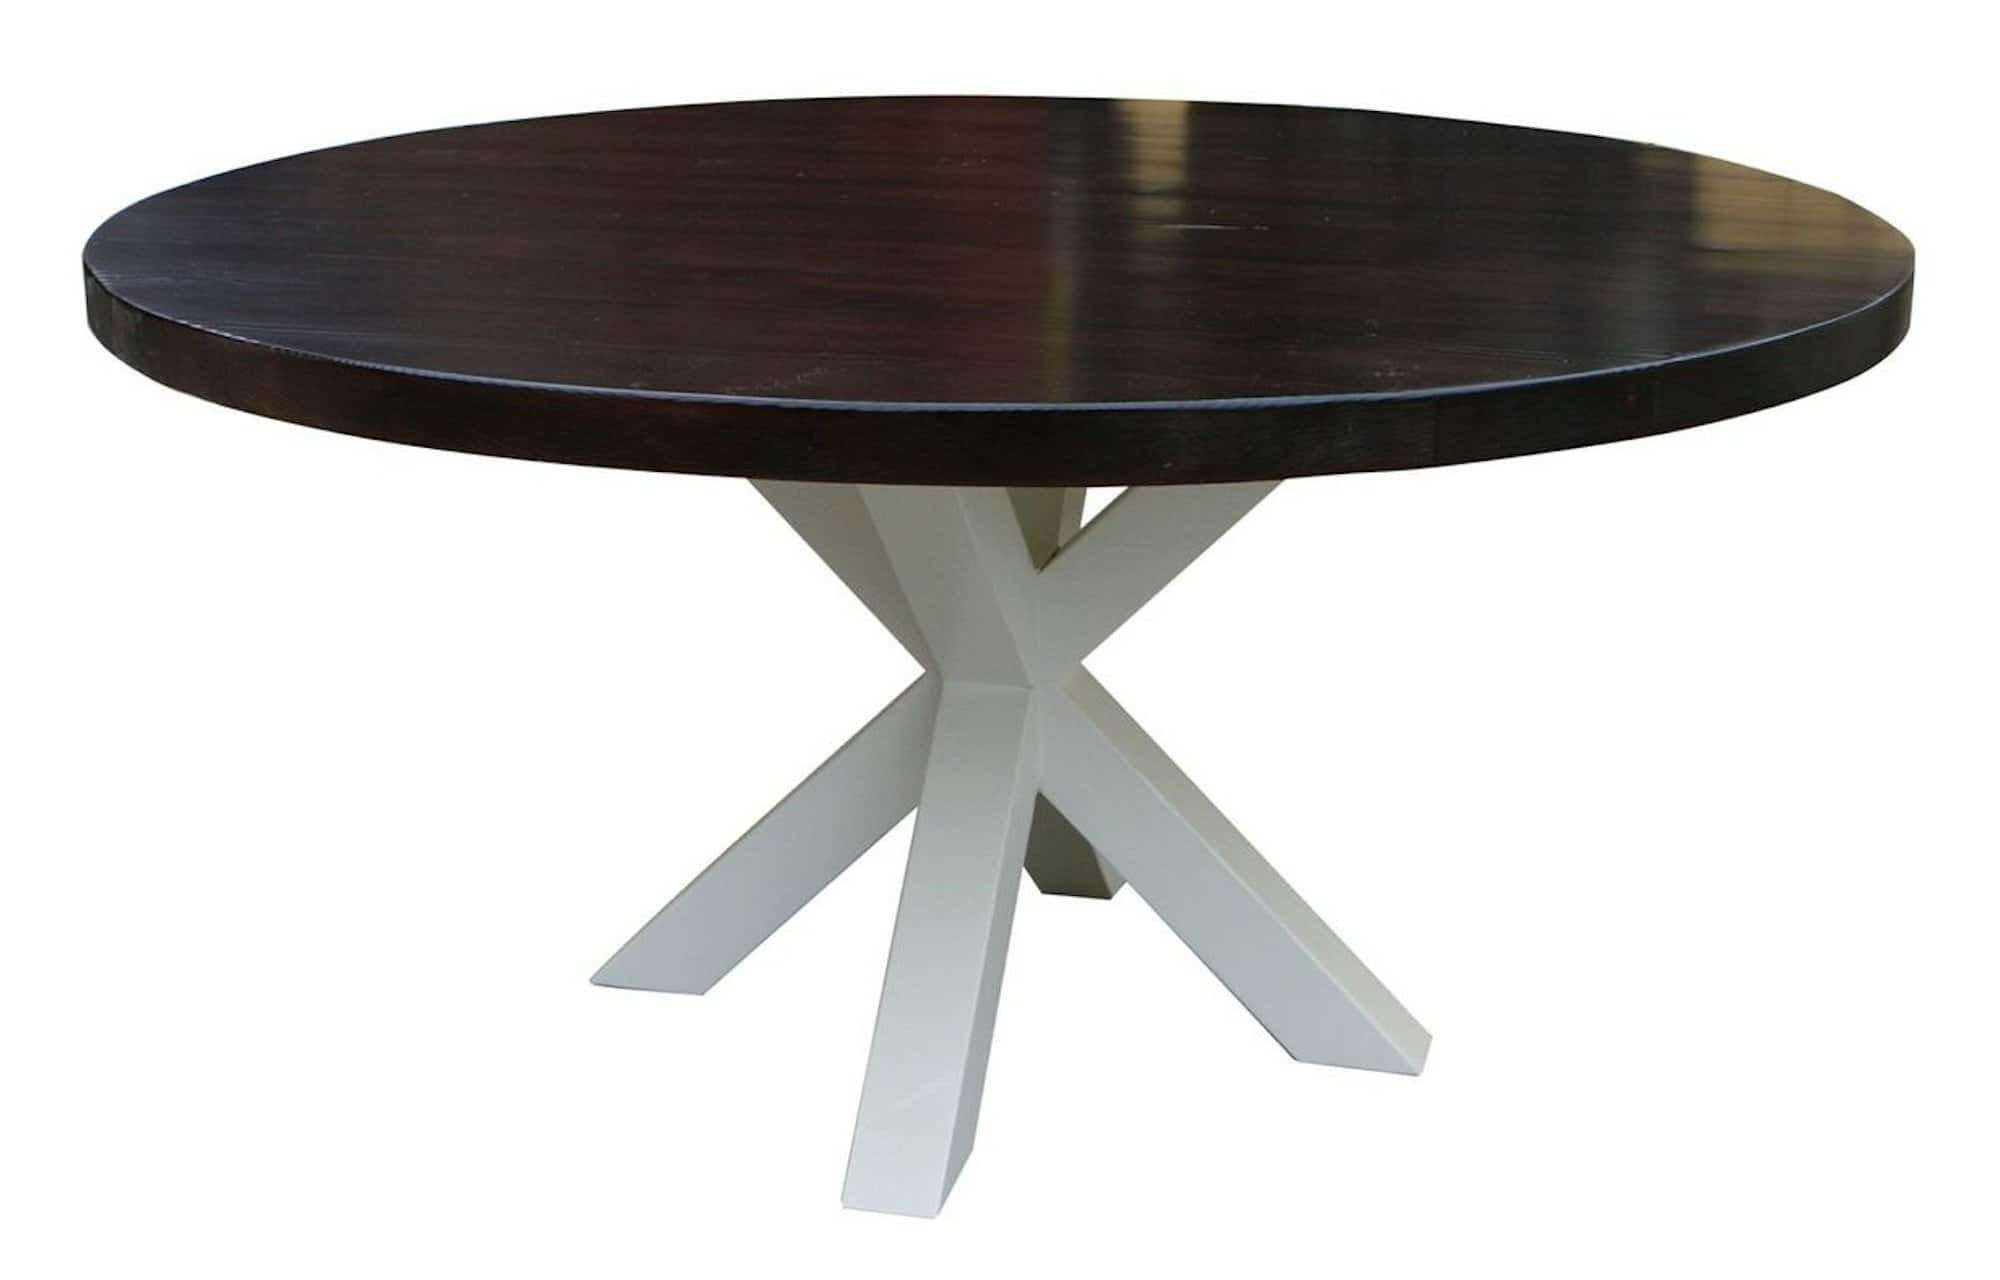 Contemporary Pedestal Table Base